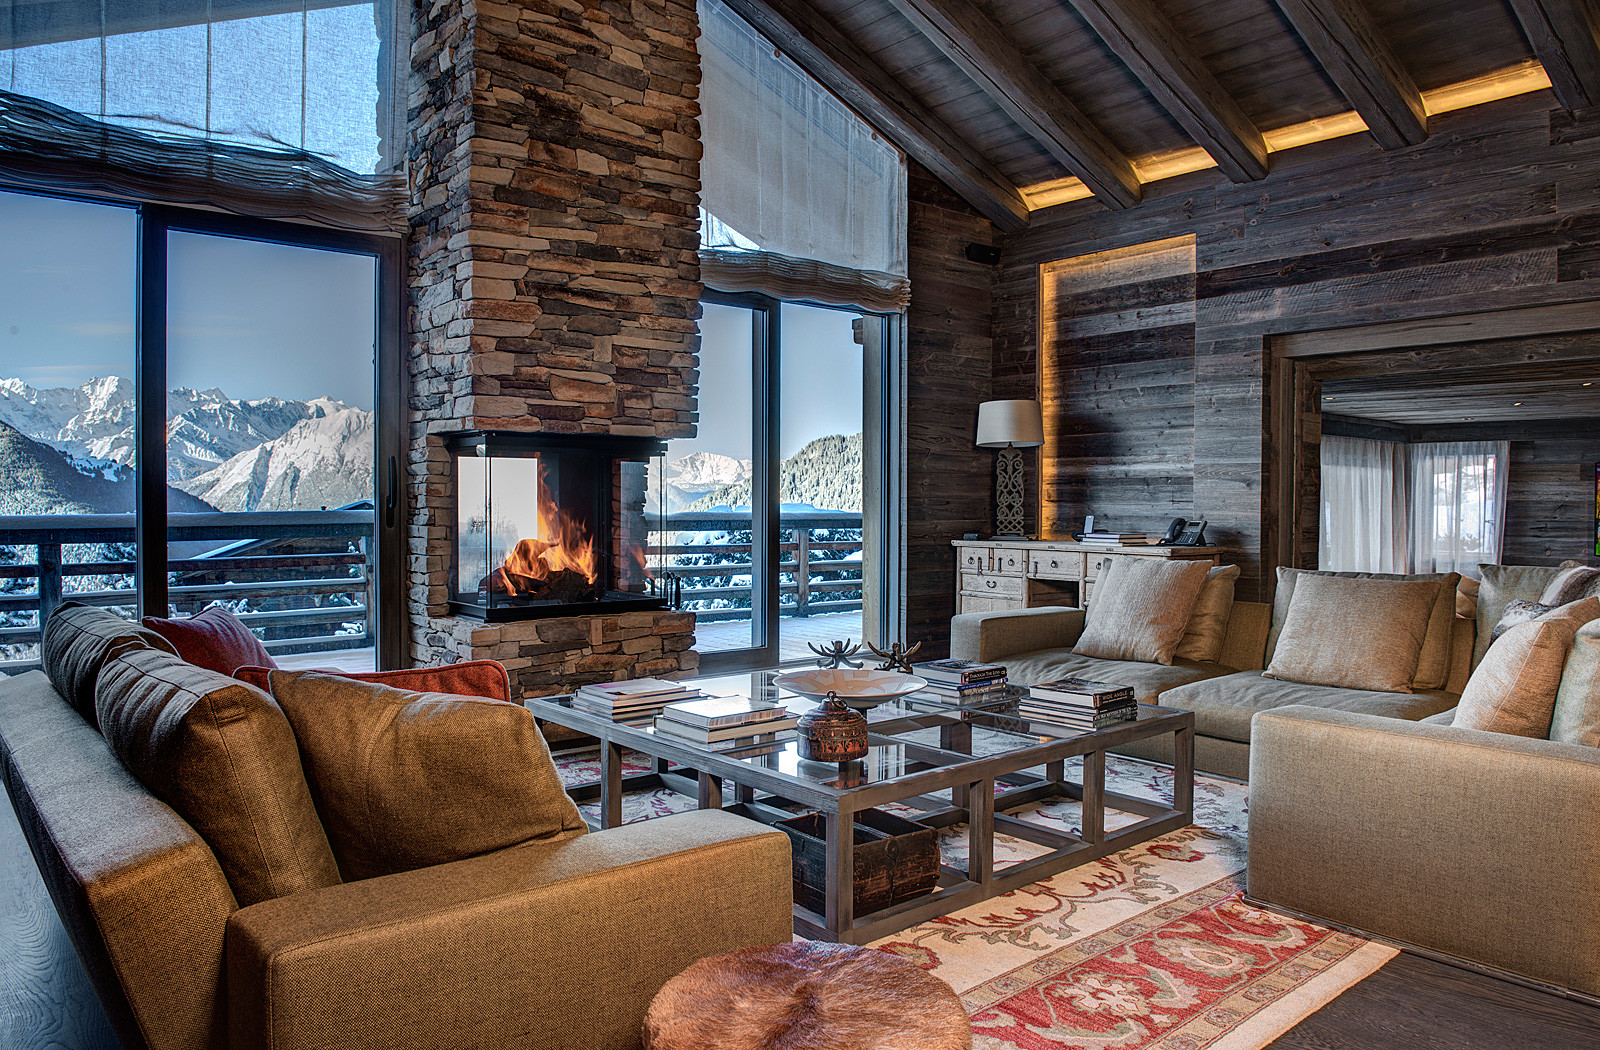 Kings-avenue-verbier-snow-chalet-sauna-parking-cinema-boot-heaters-fireplace-massage-room-002-4